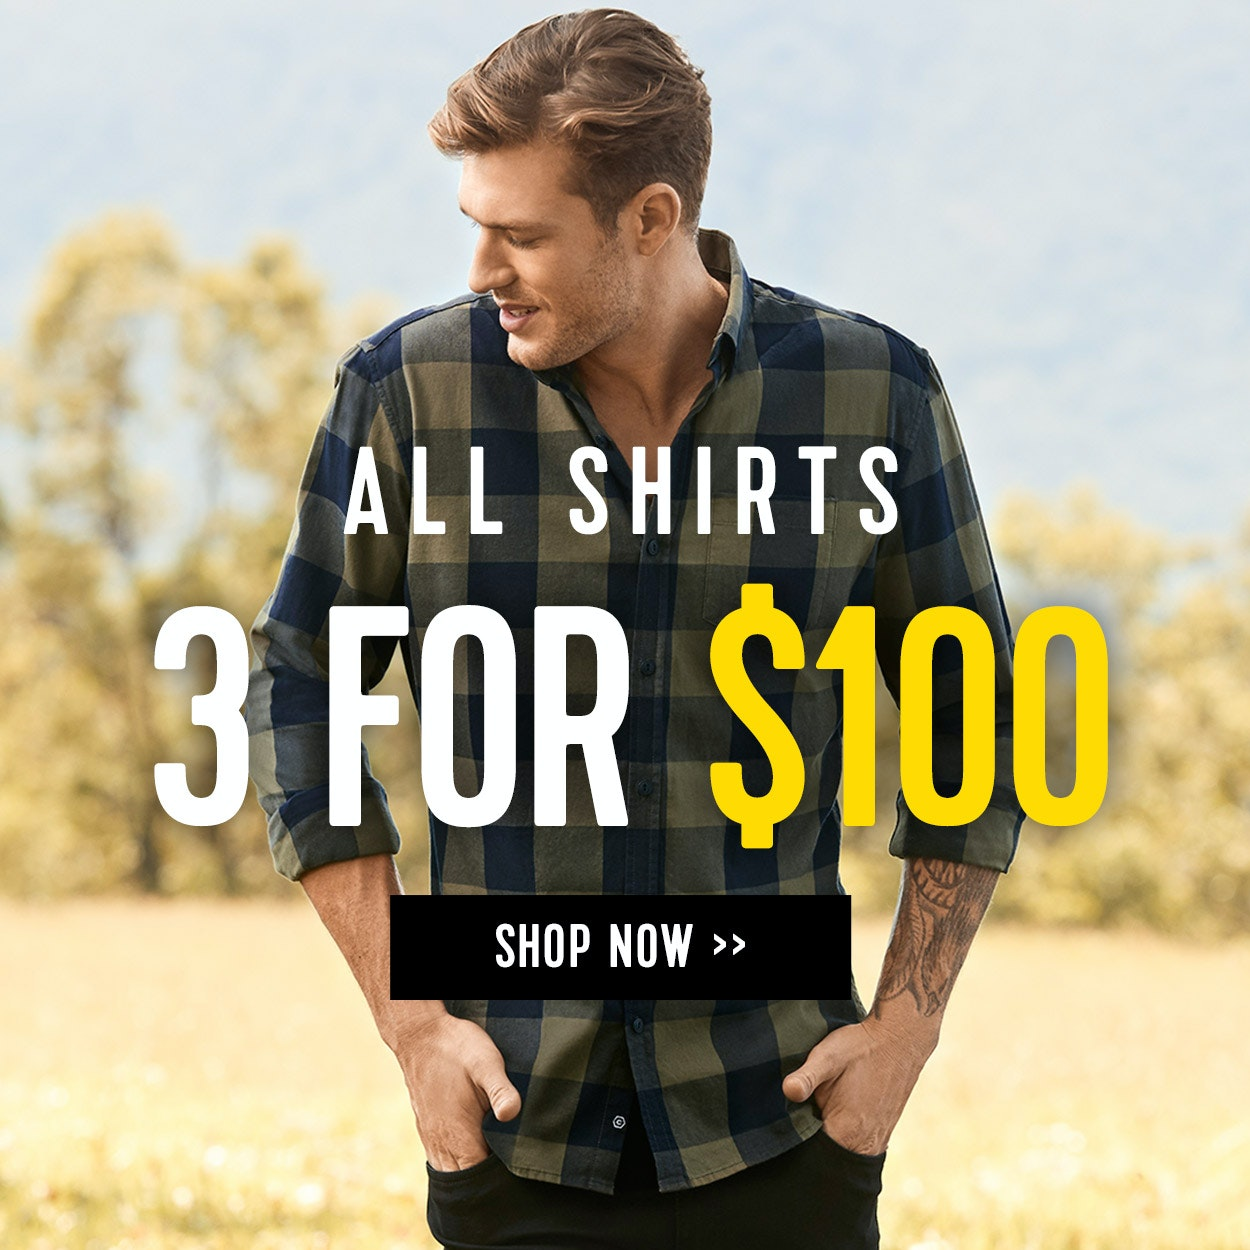 Shirts 3 for $100